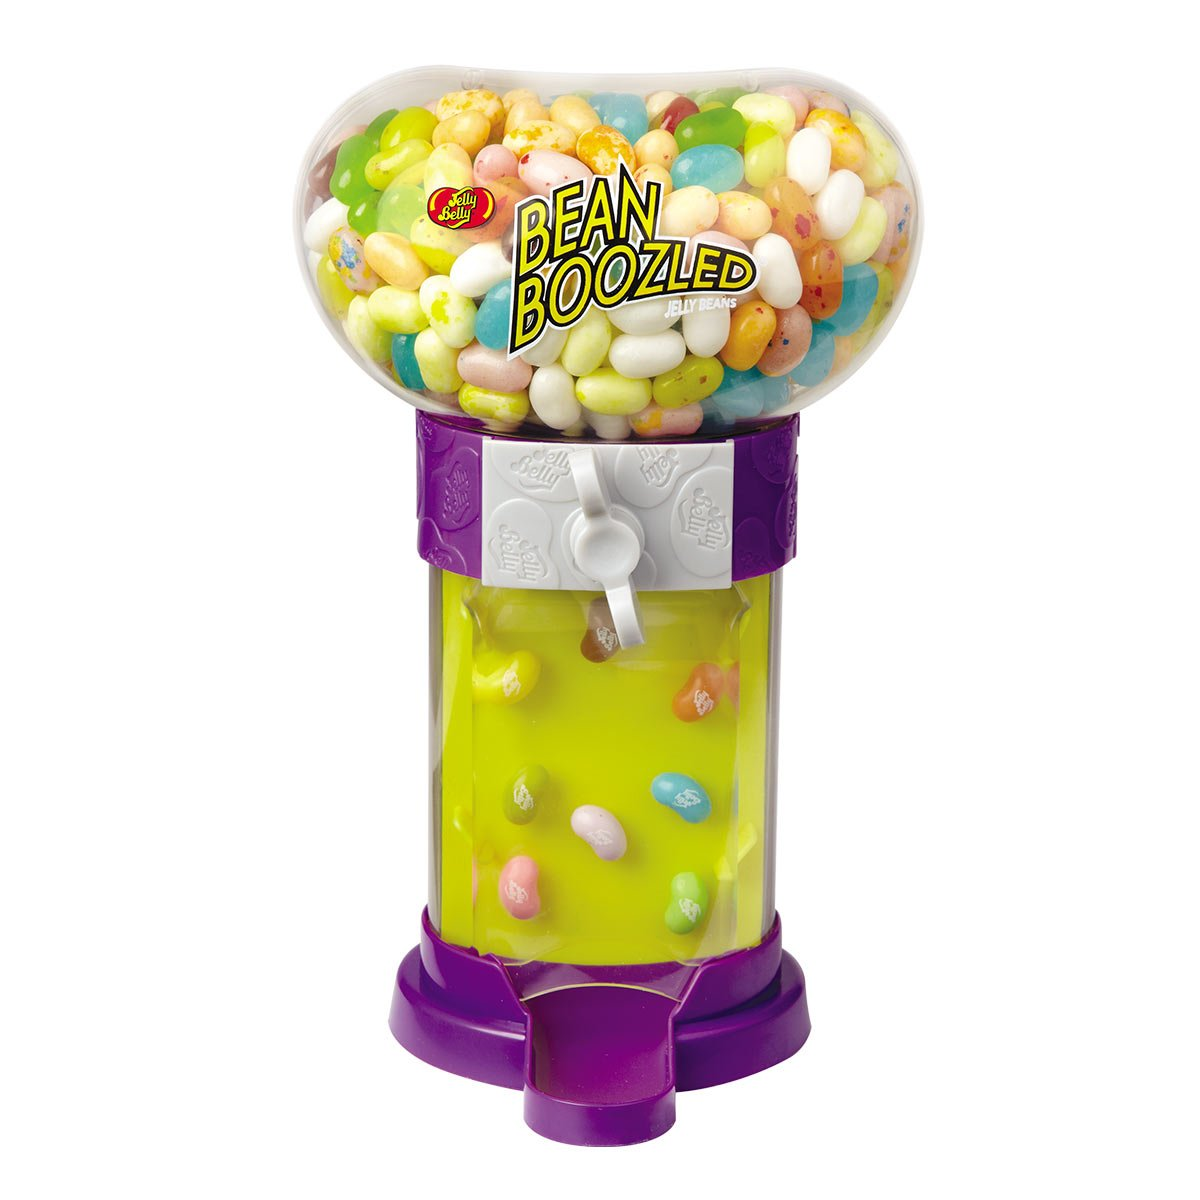 Jelly Belly BeanBoozled Bouncing Bean Machine by Jelly Belly